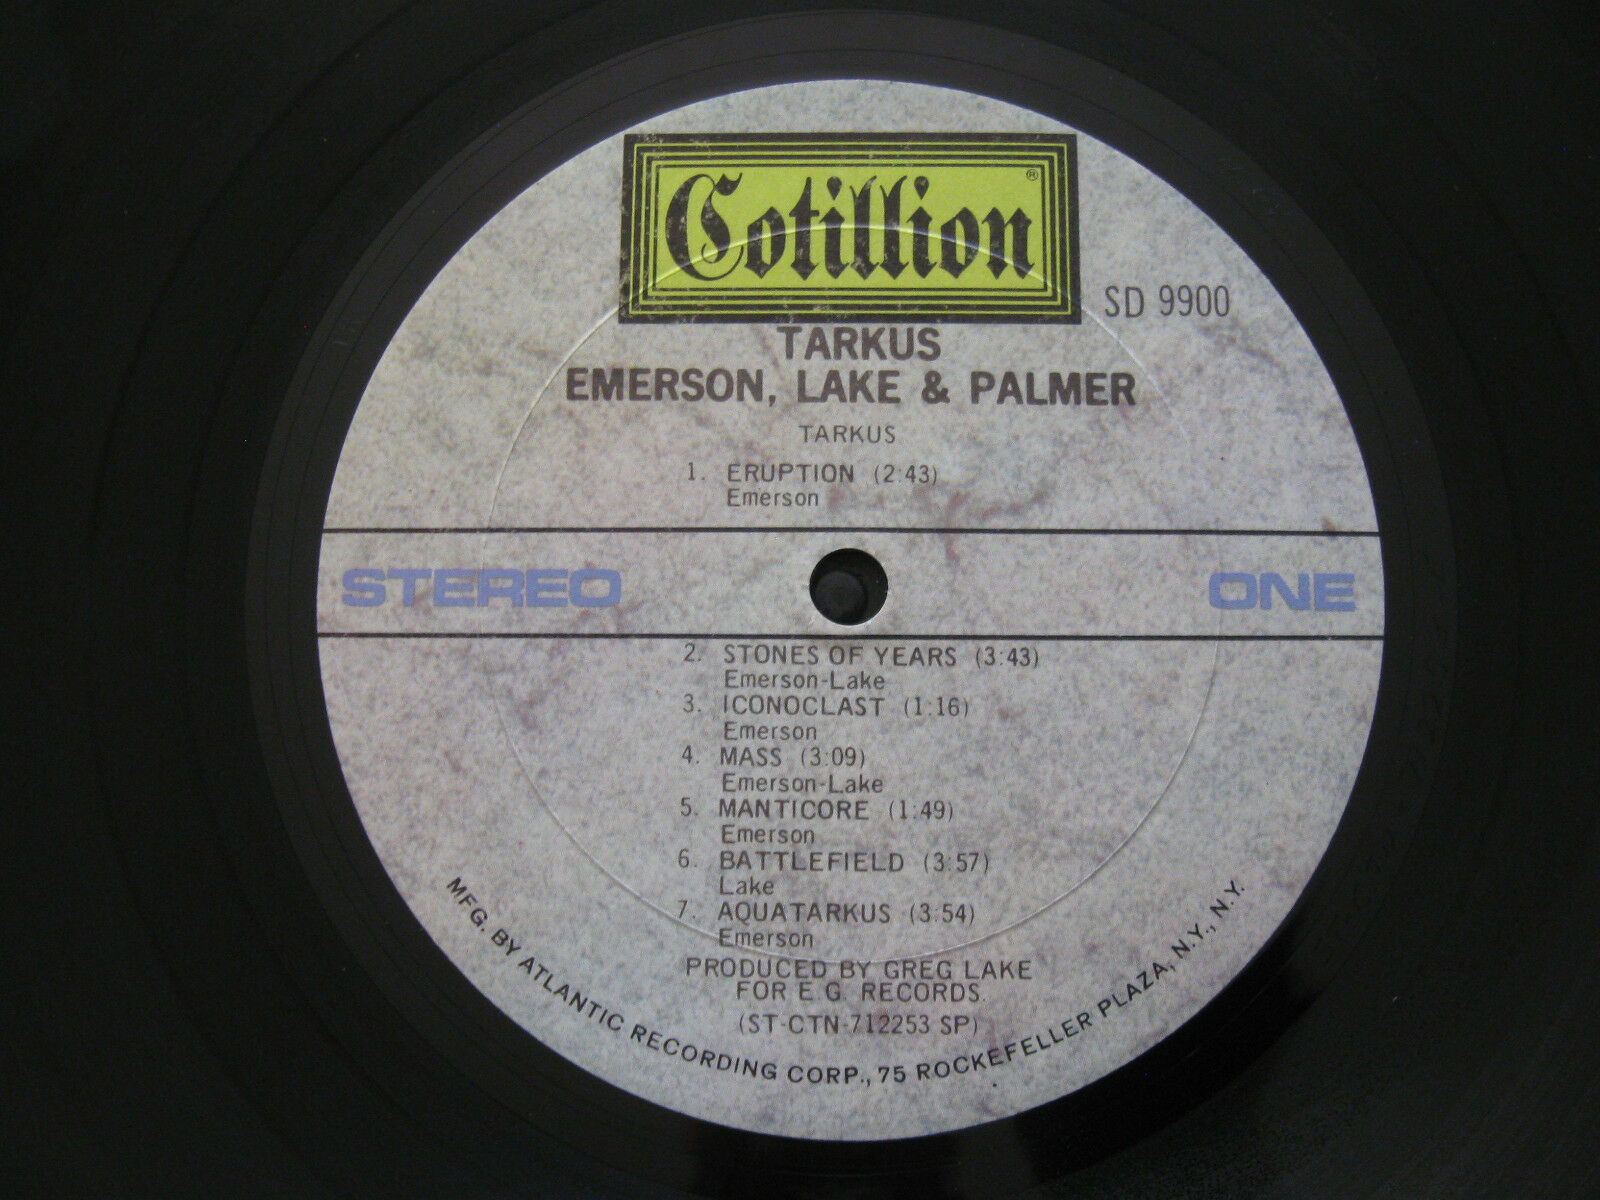 Emerson Lake & Palmer ELP Tarkus Cotillion SD 9900 Stereo Vinyl LP Record Album image 5